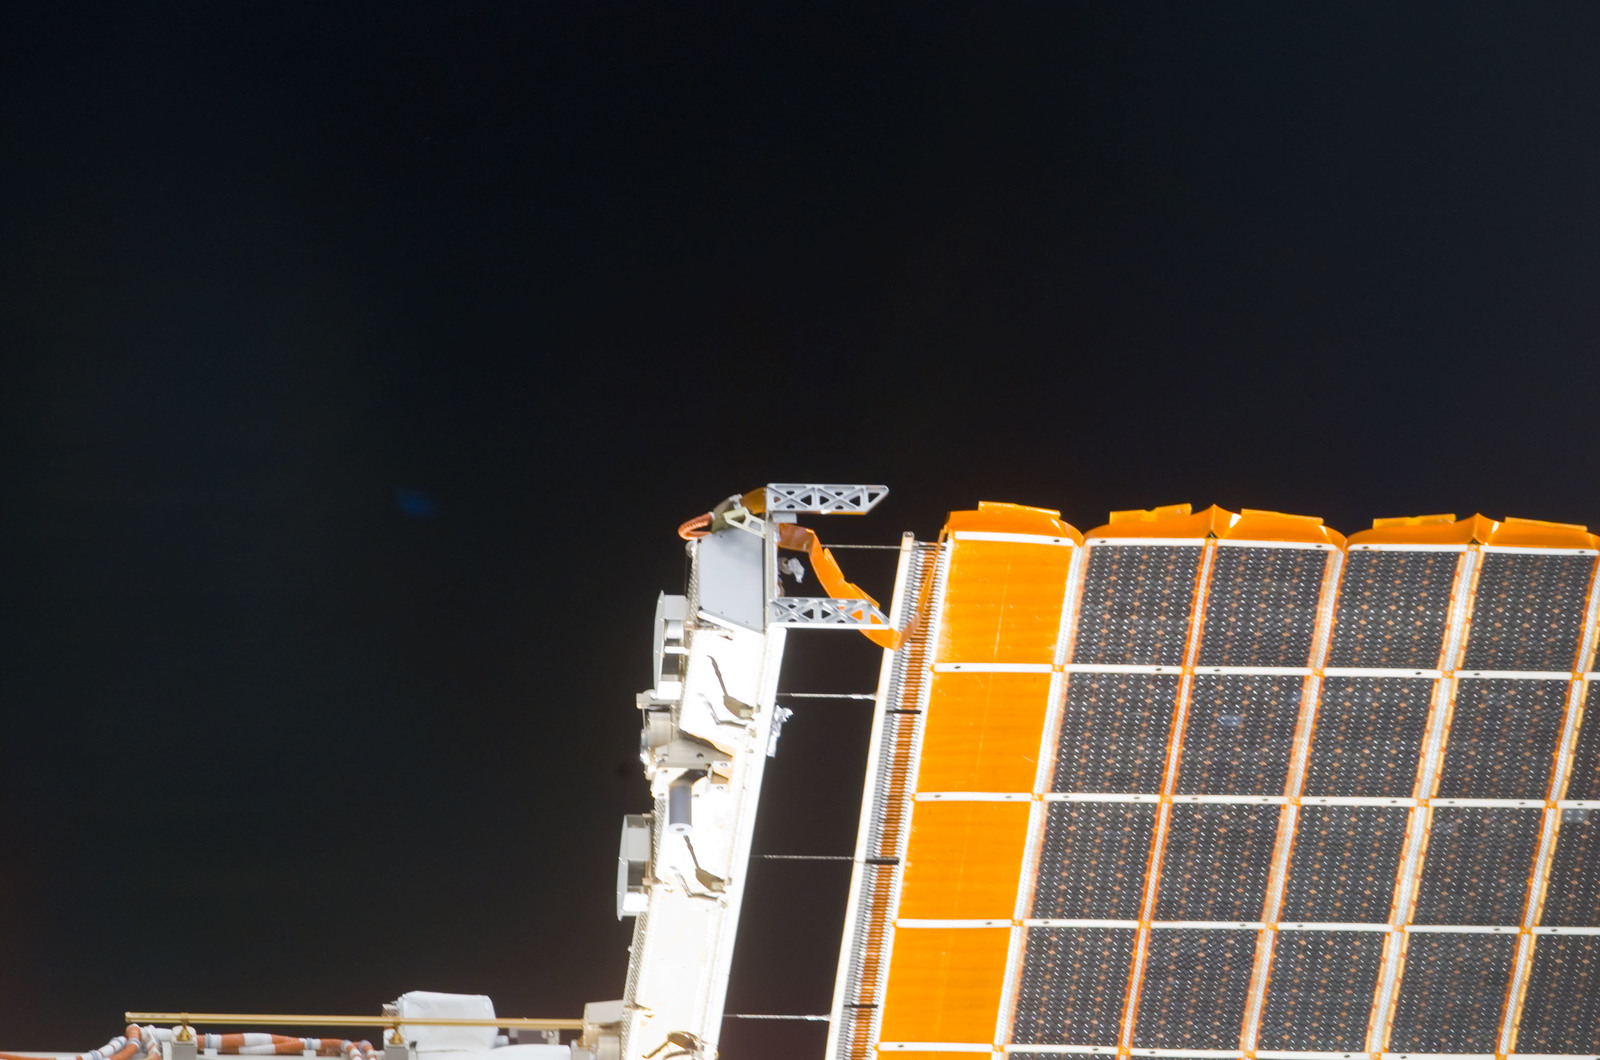 S113E05427 - STS-113 - Partial view of the port PV Array taken during flyaround following STS-113 undocking